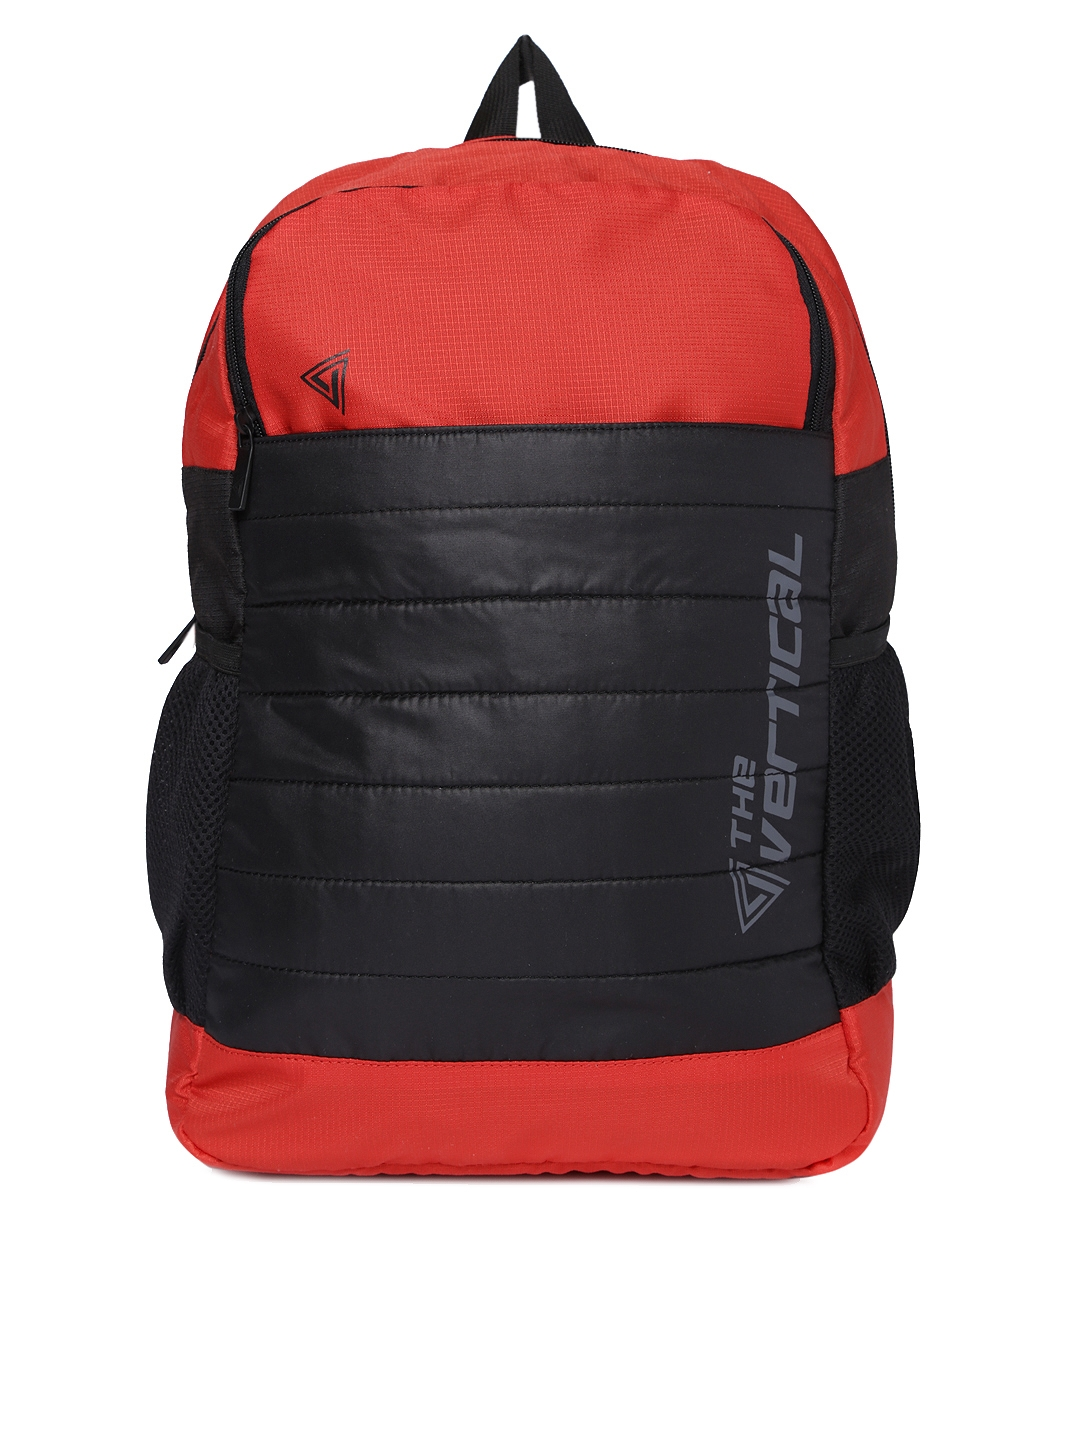 THe VerTicaL Unisex Red   Black Laptop Backpack